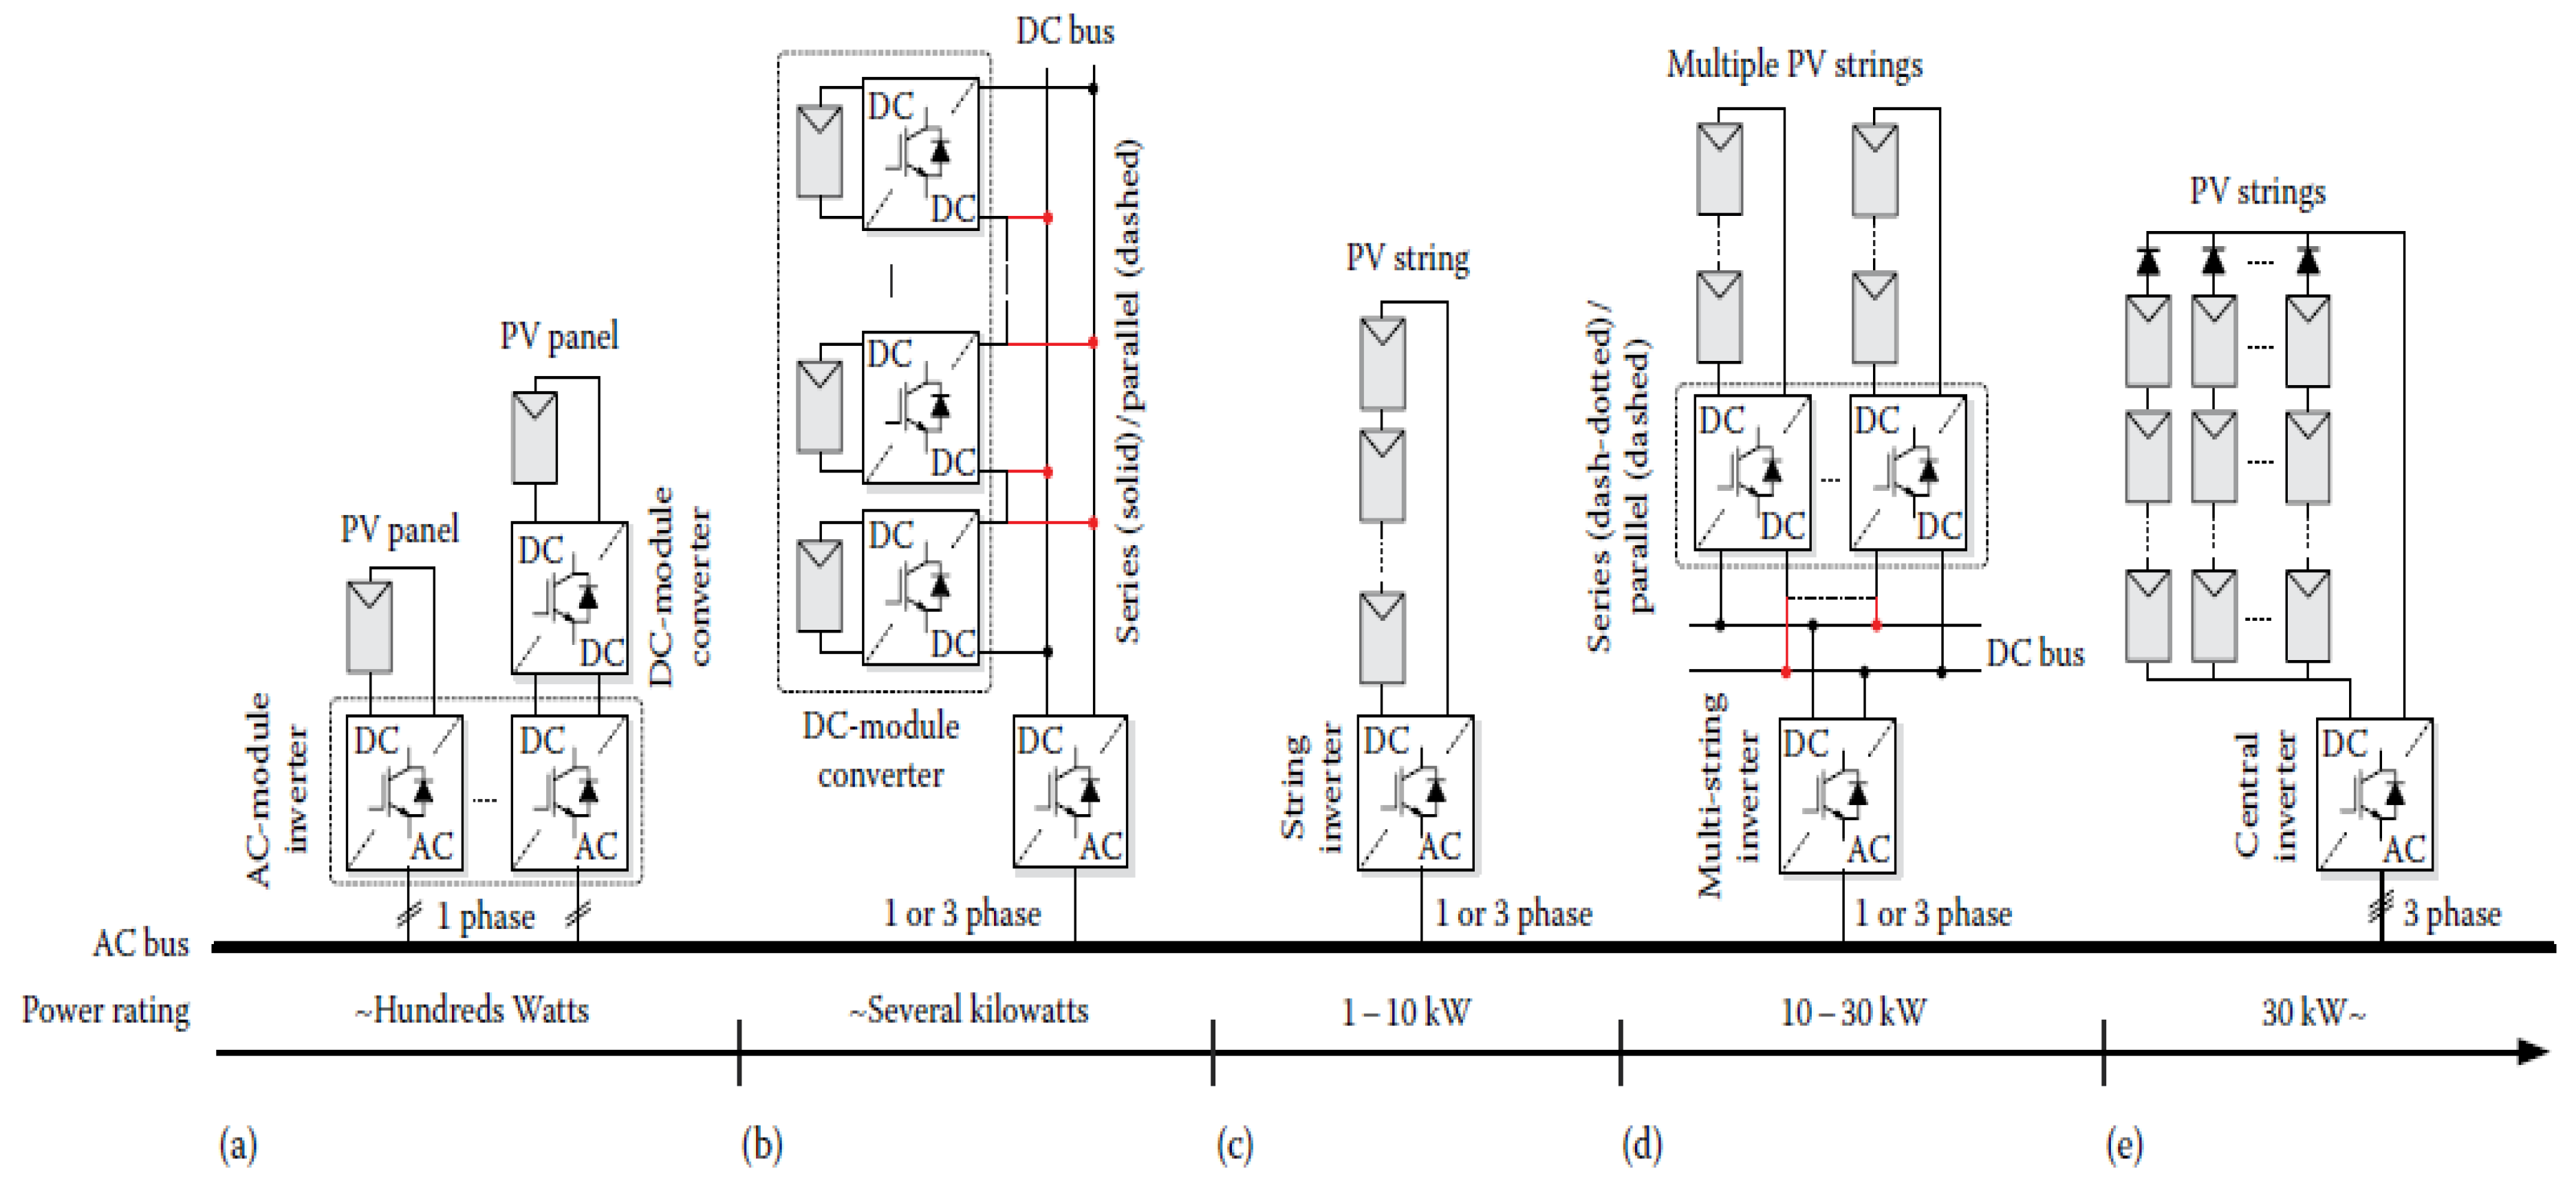 Energies Free Full Text A Review On Recent Advances And Future Circuits Dc Power Supply Ac Forward Transformerless To Inverters Converters Electronics 11 01968 G001